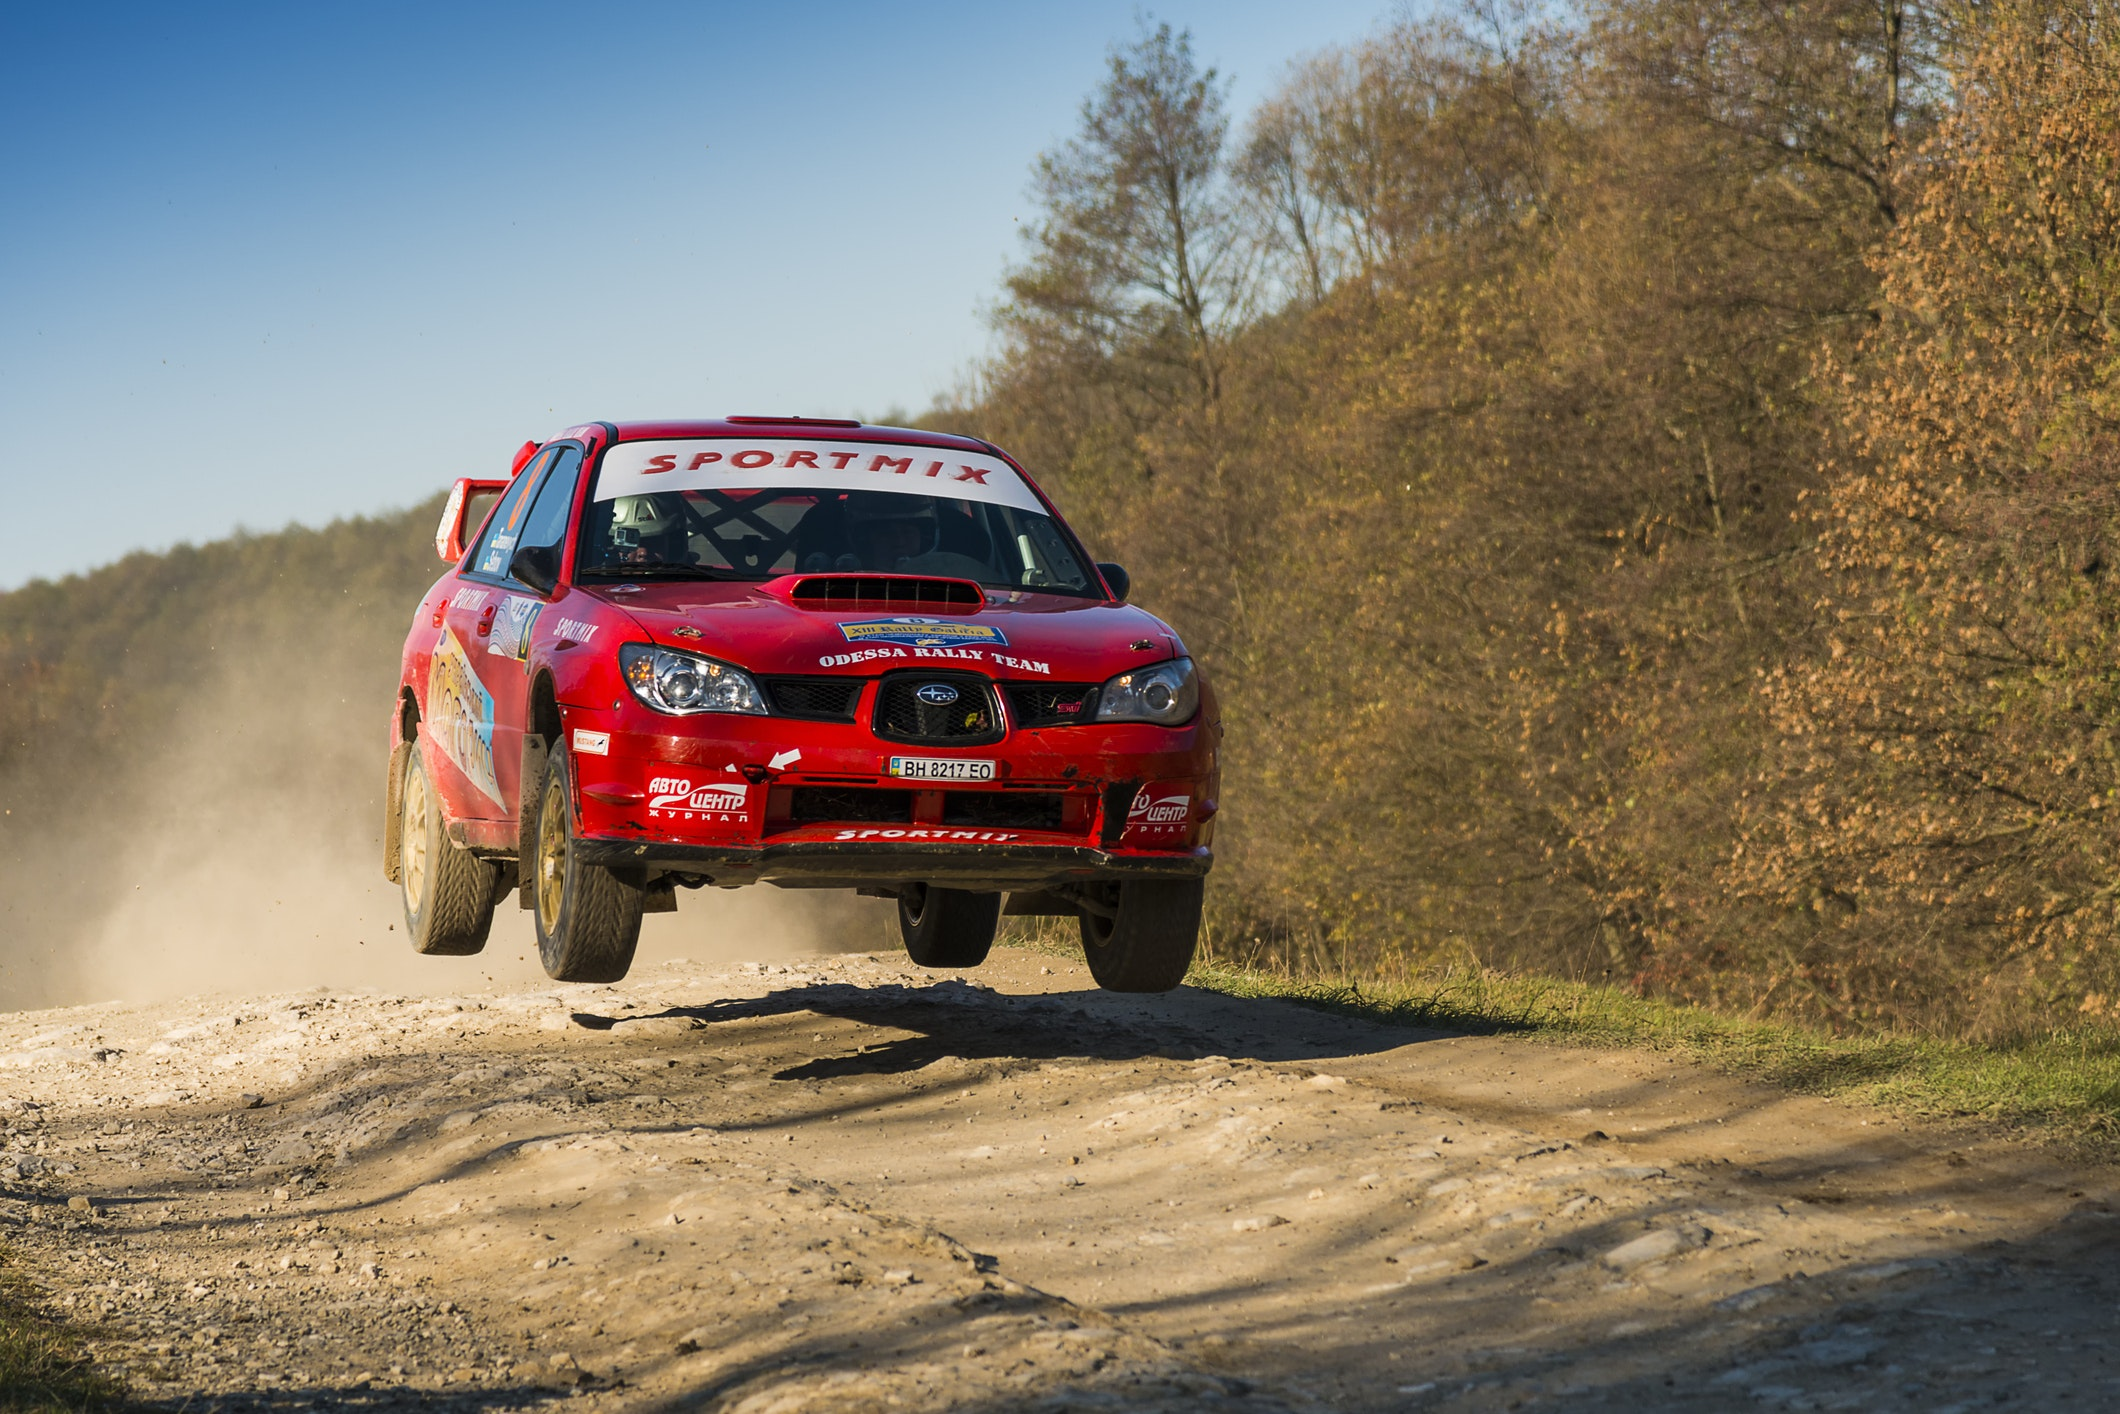 Best Rally Cars for Beginners